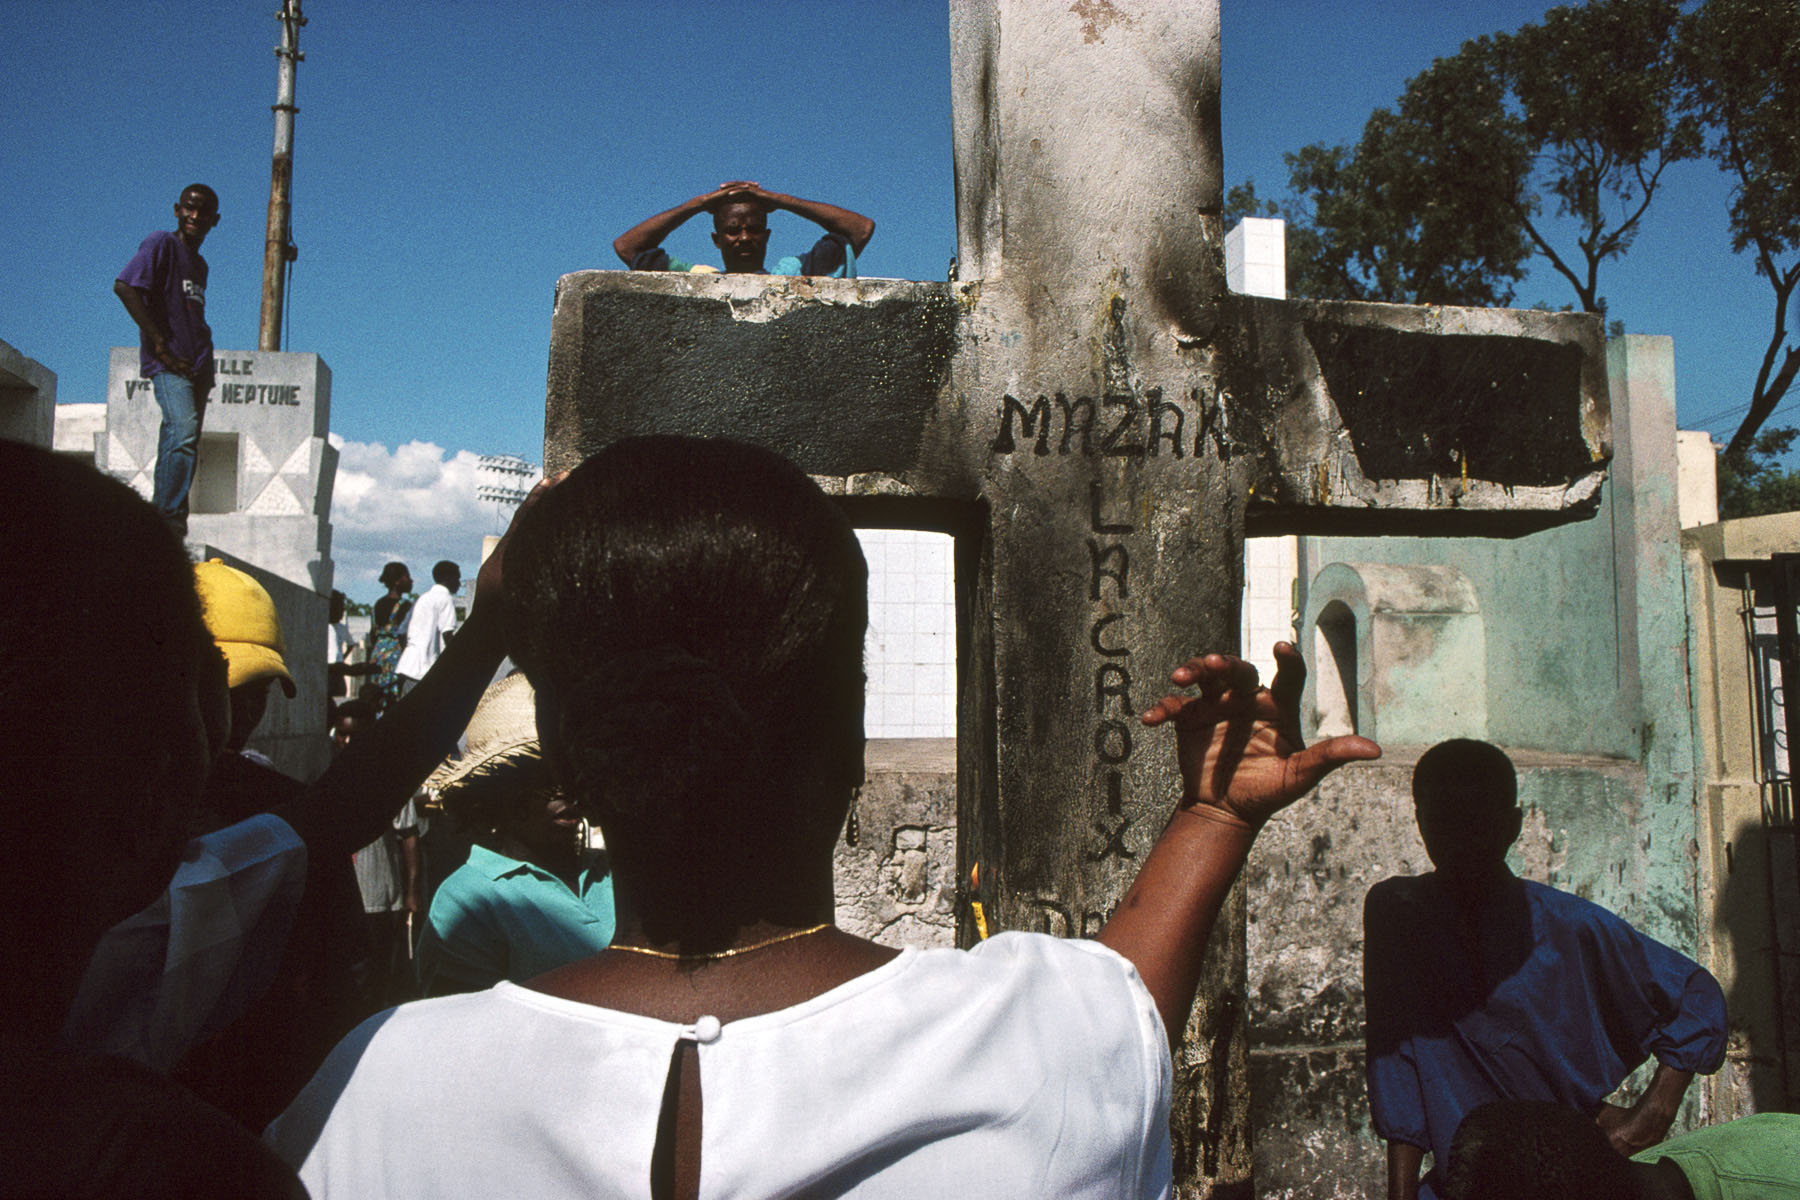 On All Saints' Day, the Guédés celebration. The voodoo followers gather in the cemeteries around the Cross of Baron Samedi, loa (spirit) of the dead in November 1995